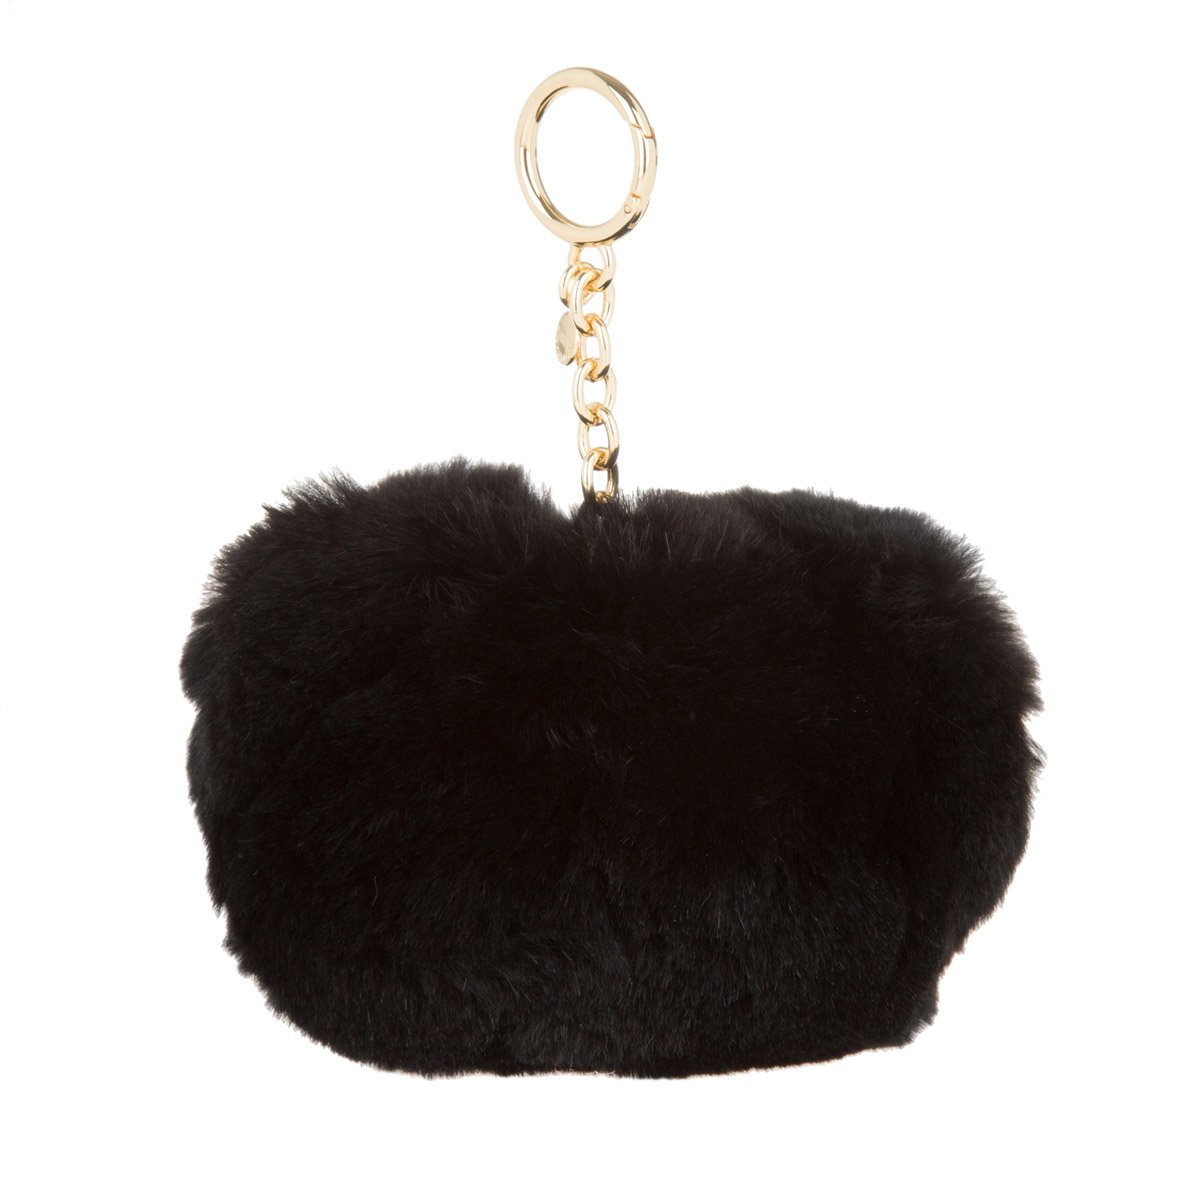 bb2b0fd7d8ab MICHAEL Michael Kors Large Fur Pom Pom Keychain at Amazon Women's Clothing  store: